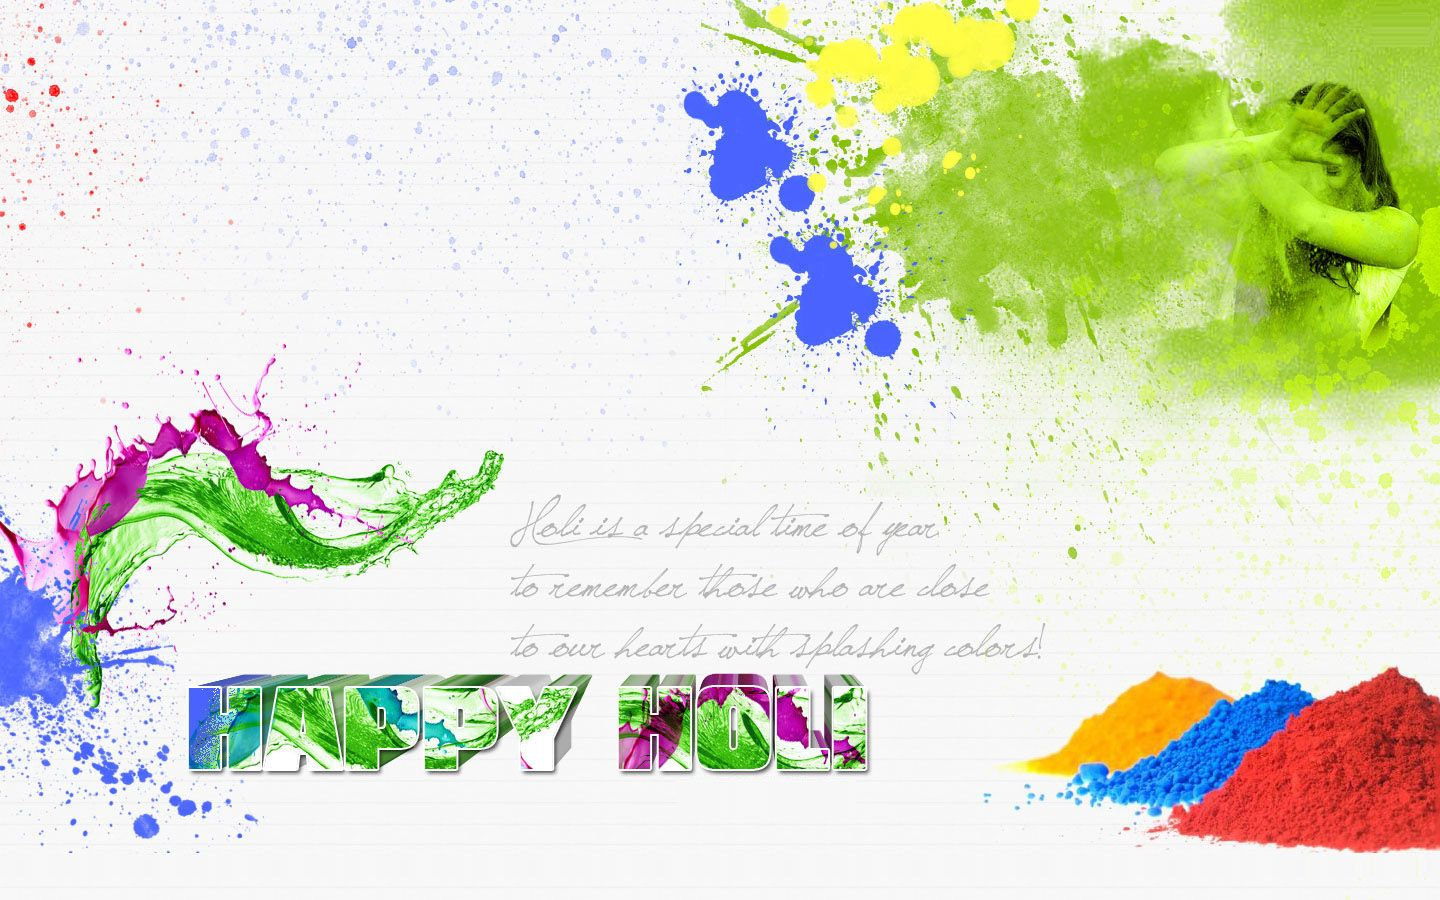 Happy holi facebook timeline covers holi hd instagram flicker happy holi facebook timeline covers holi hd instagram flicker images kristyandbryce Image collections